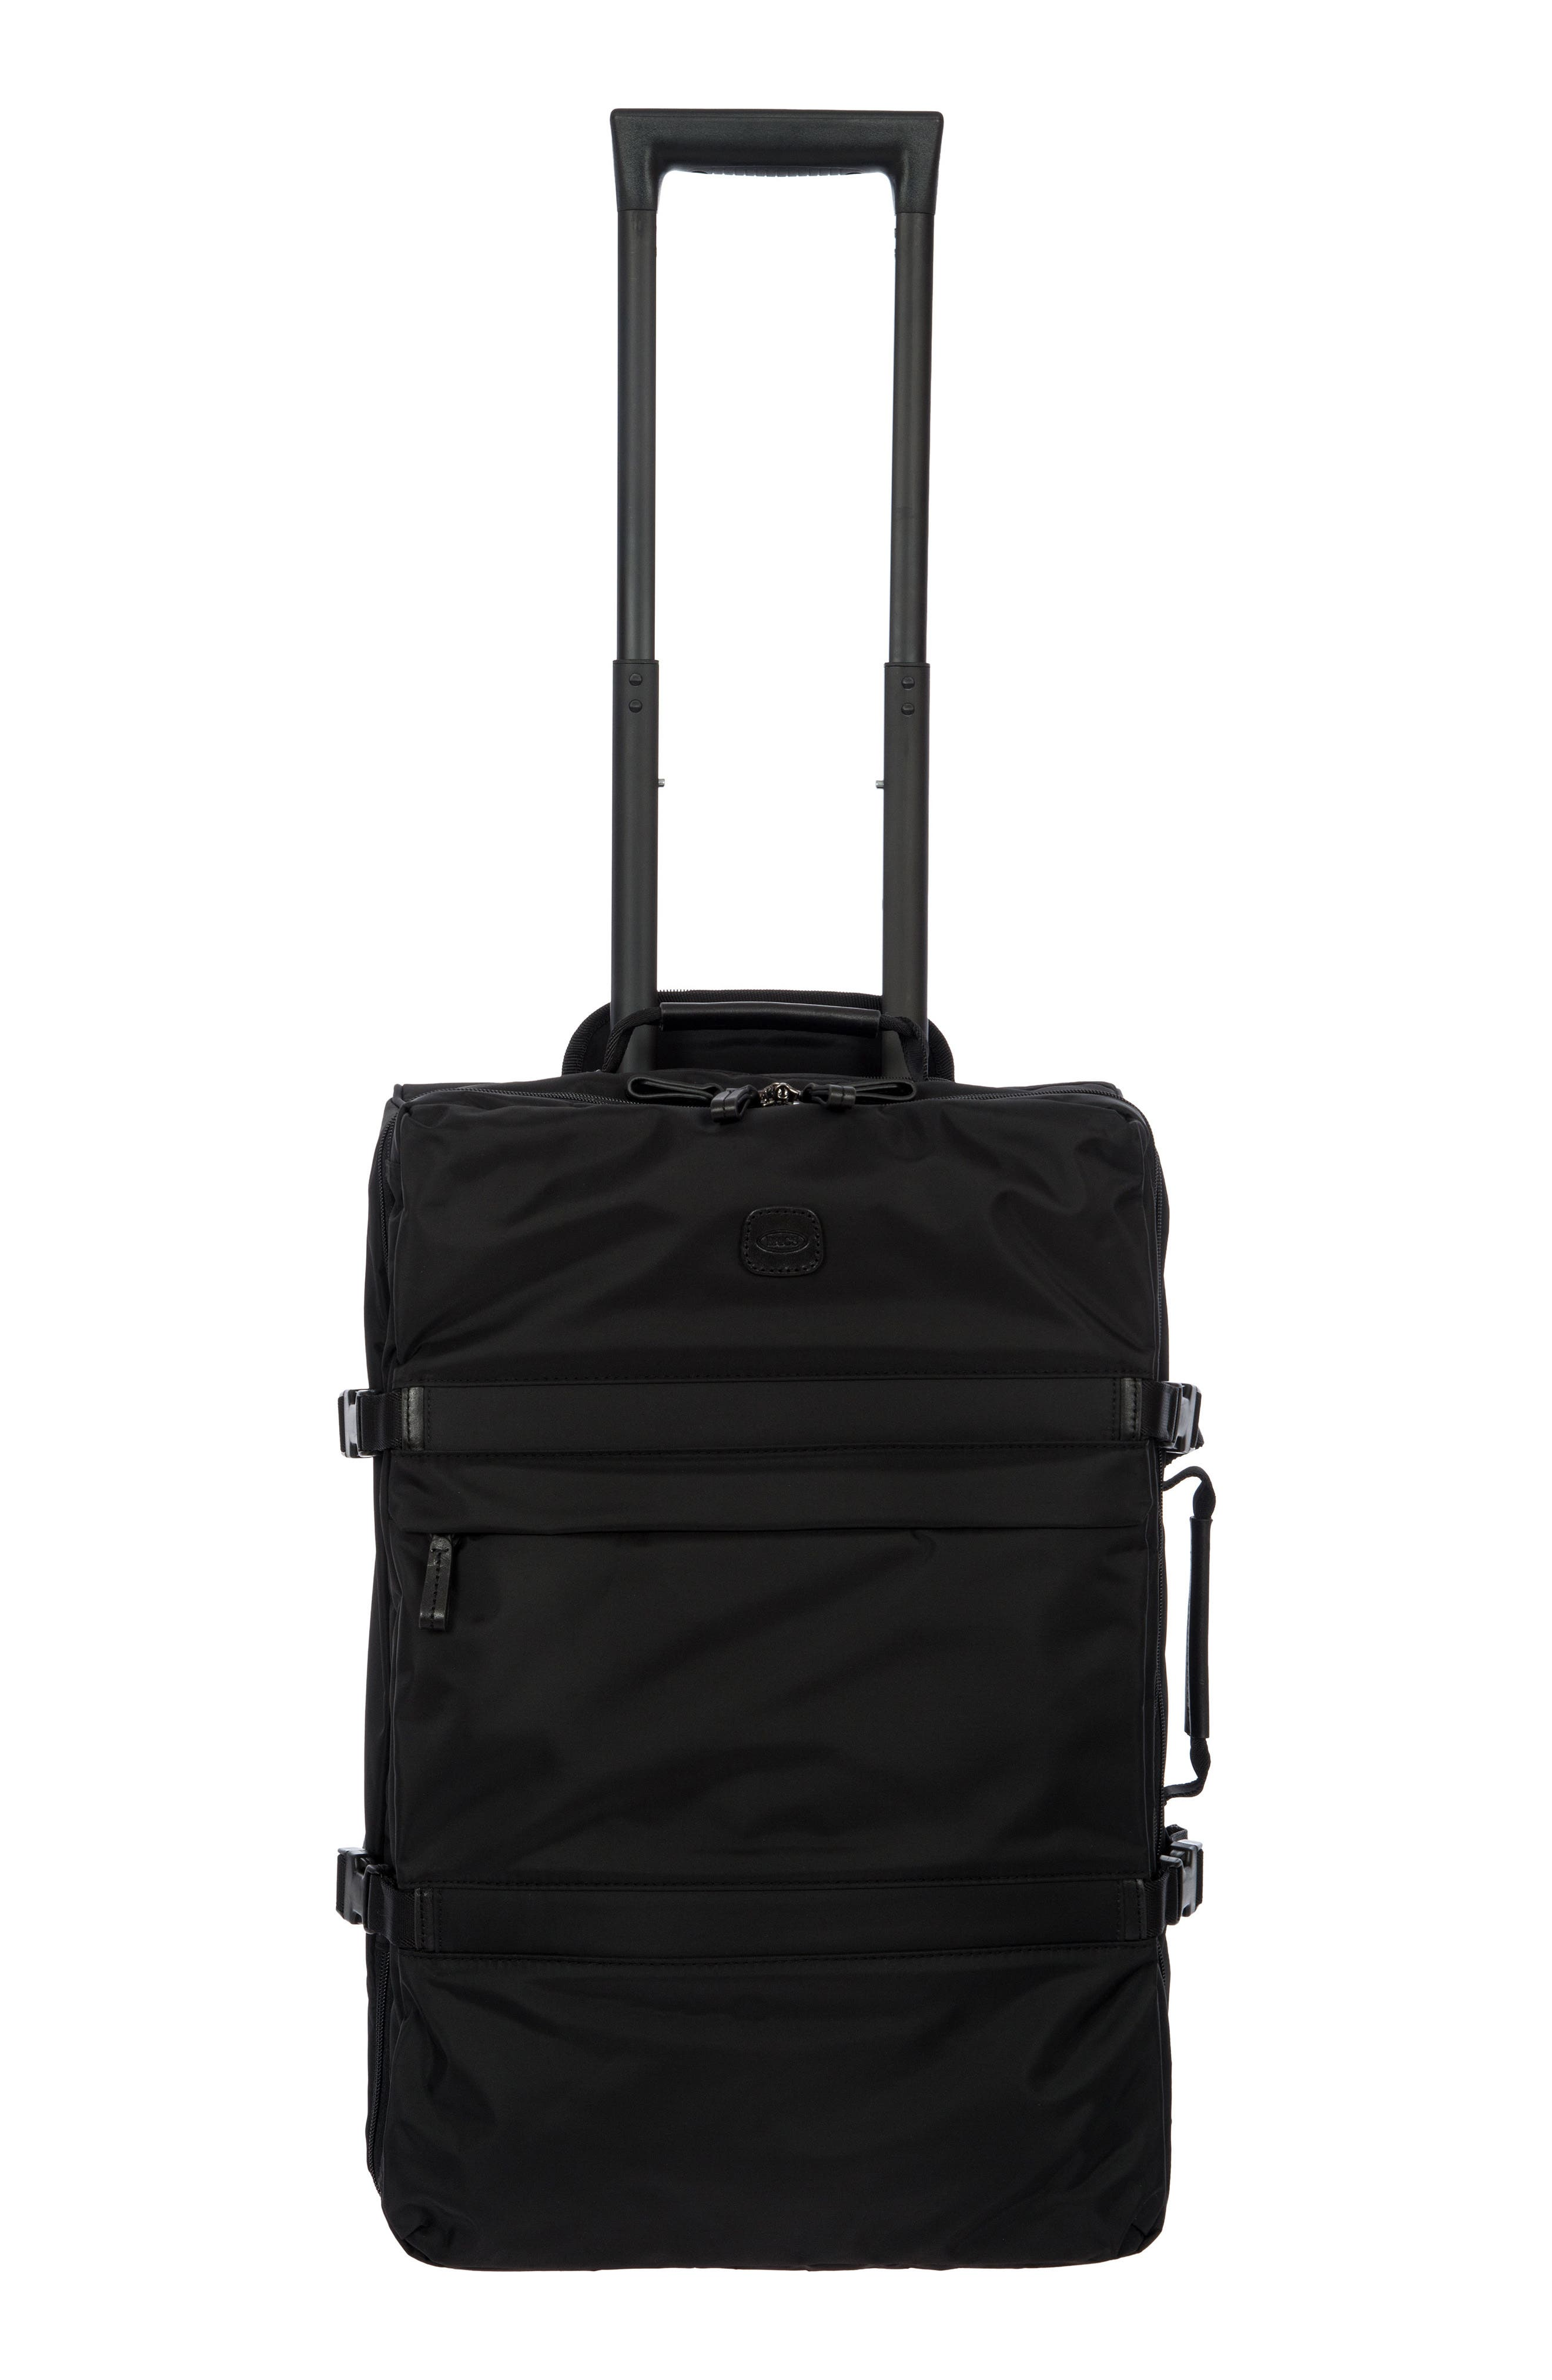 "X-Travel 21"" Montagna Carry-On Trolley Luggage in Black/ Black"